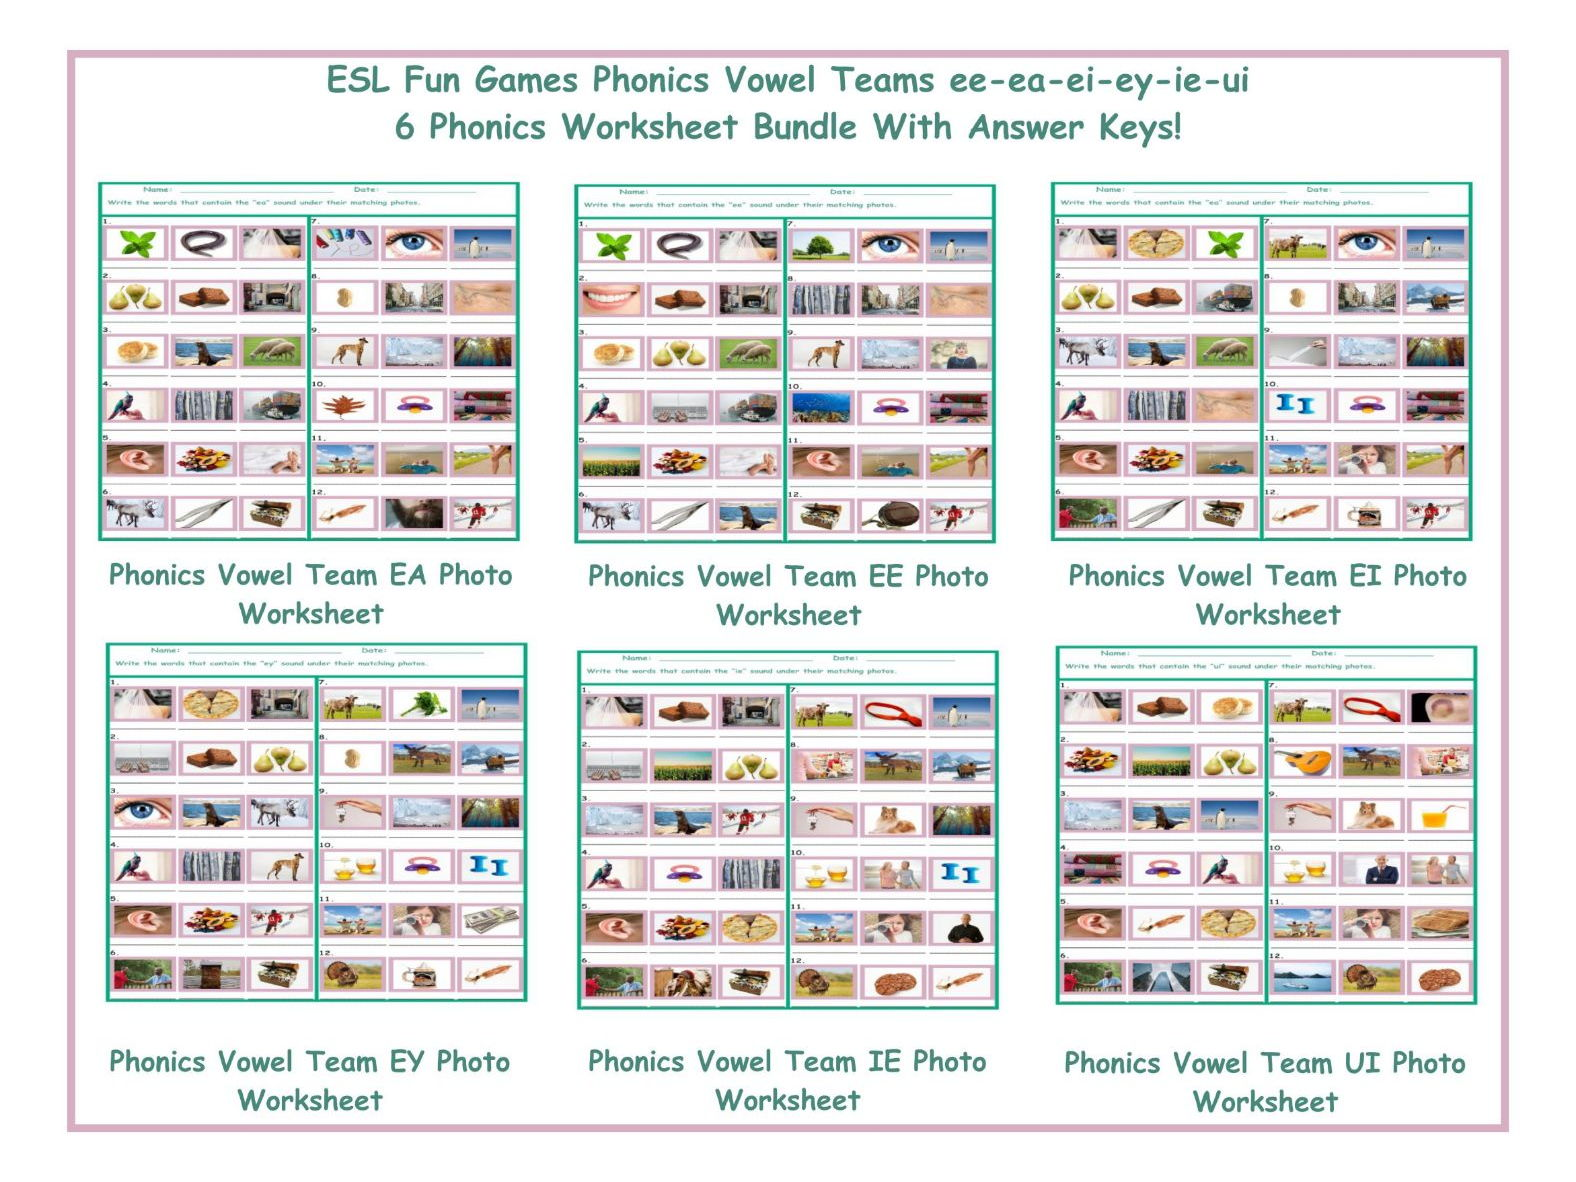 Phonics Vowel Teams Ee Worksheets Samples